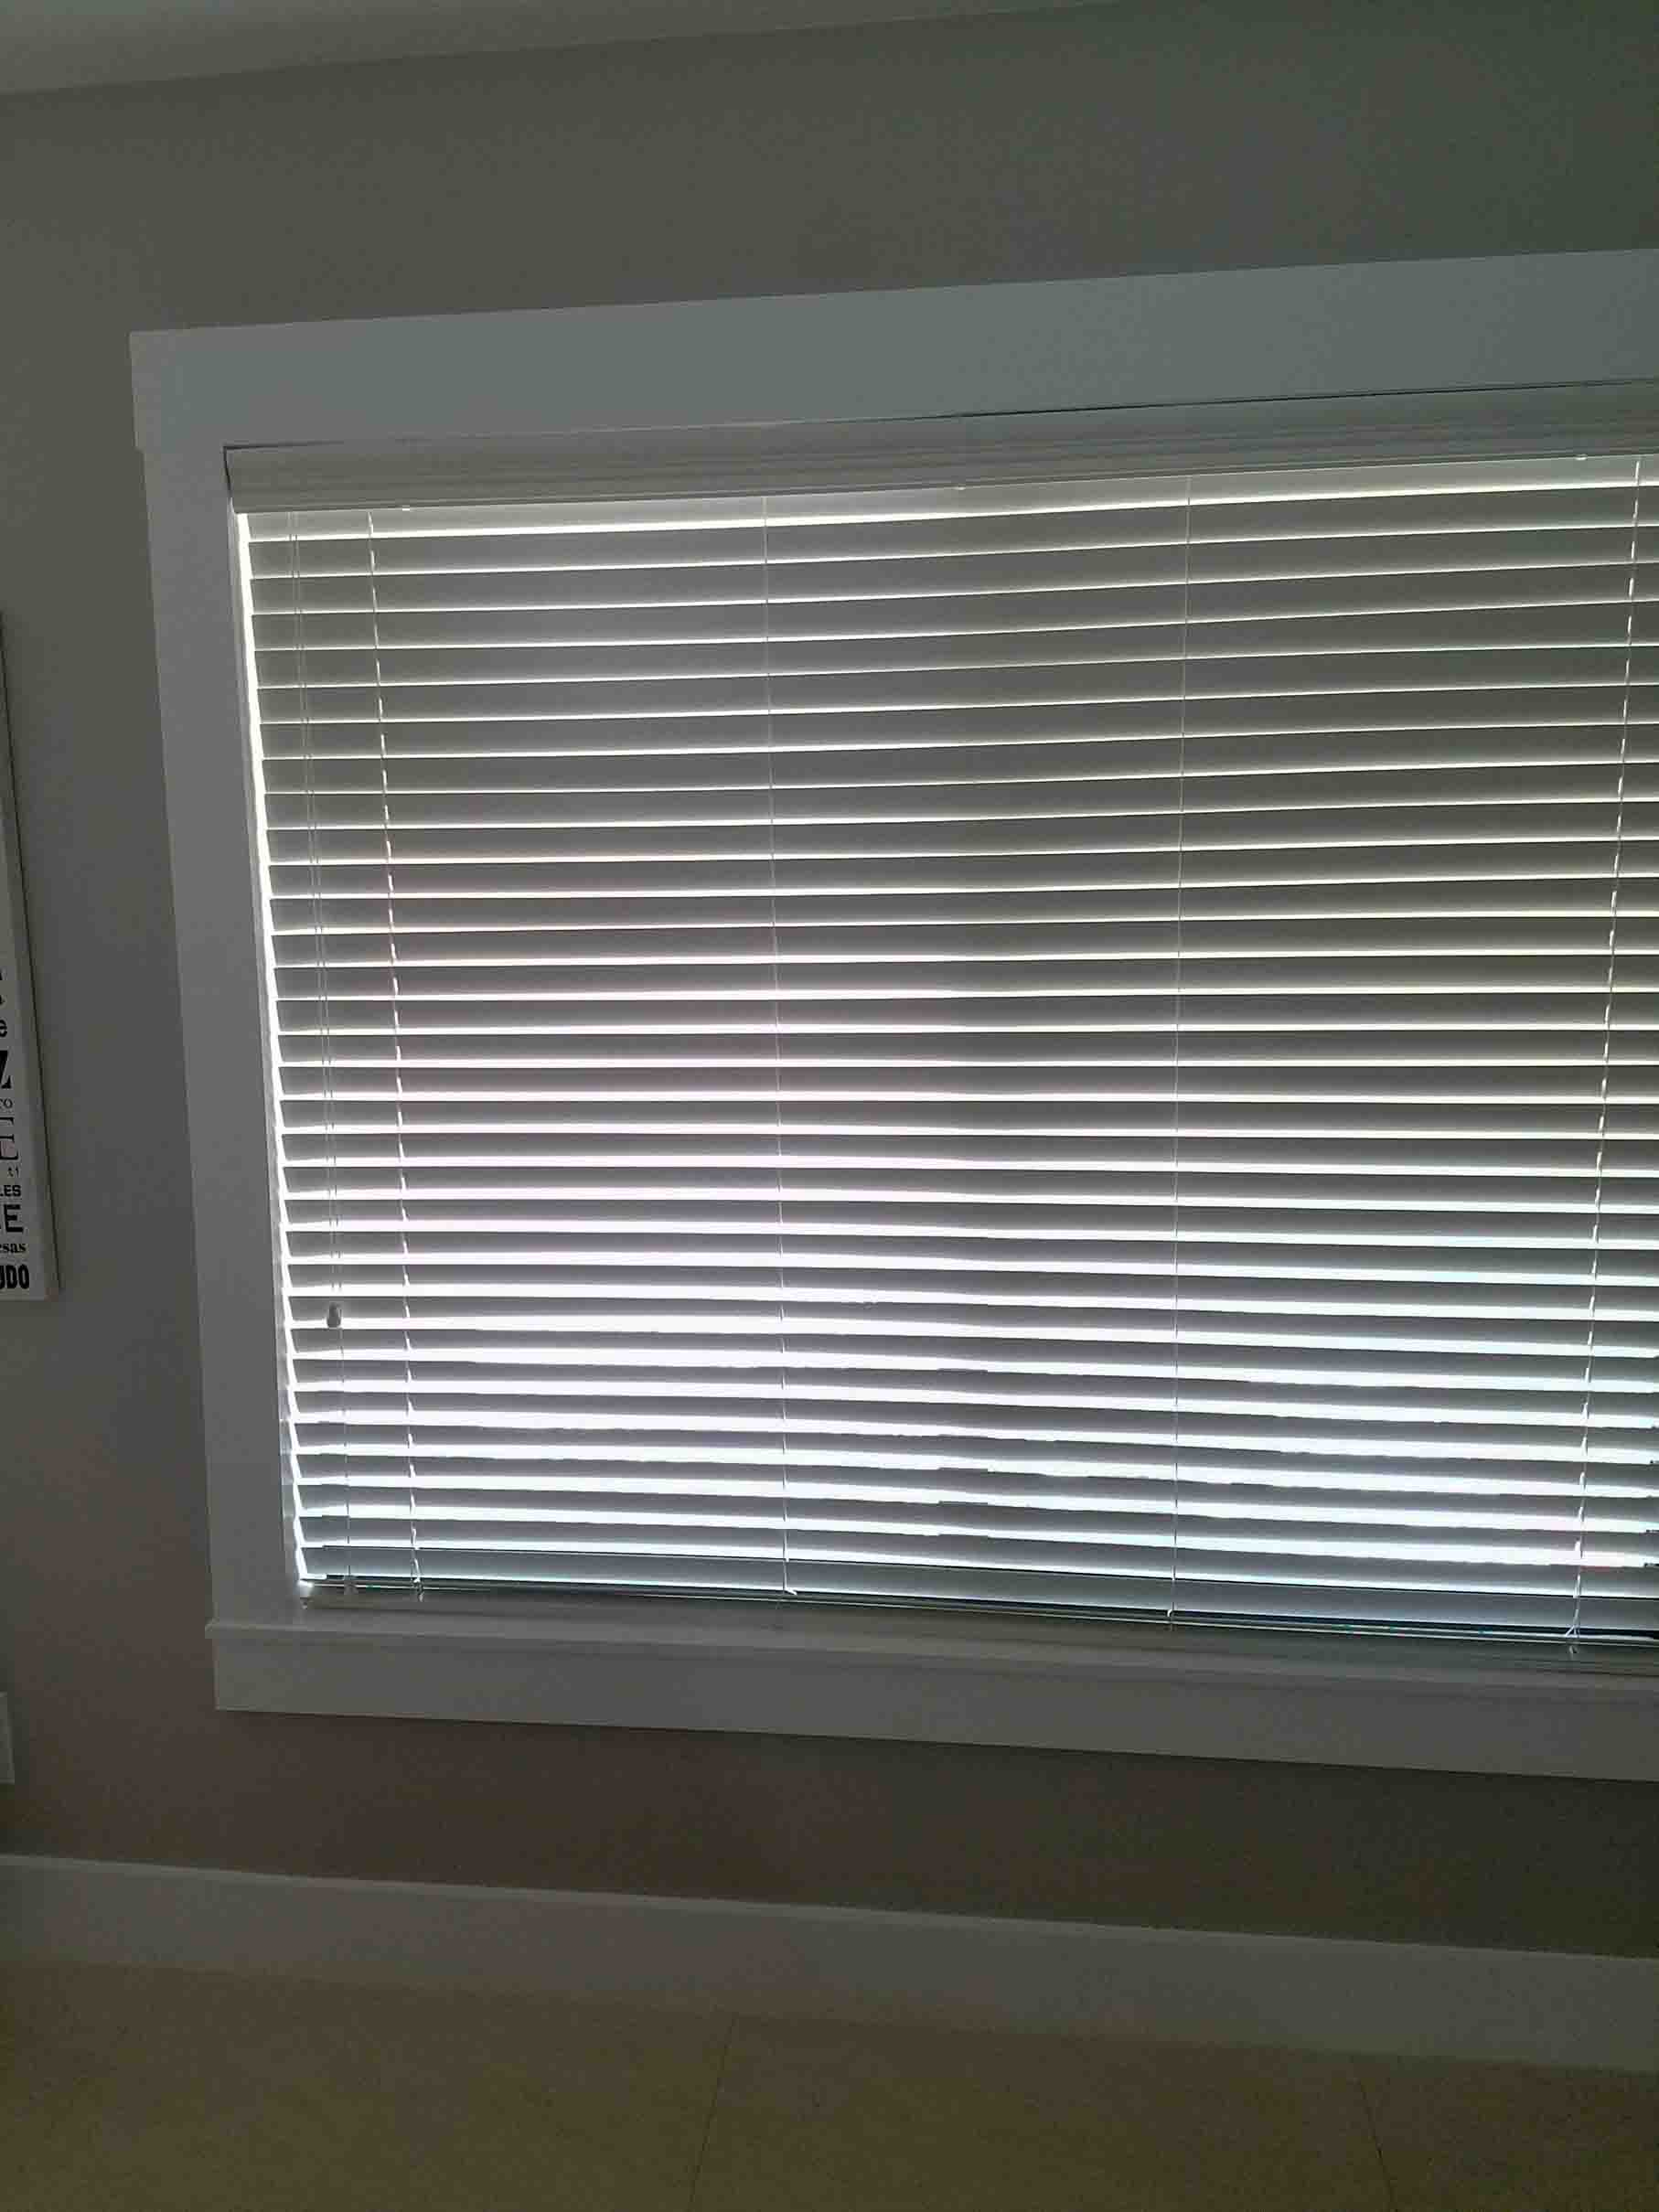 wood blinds gallery WOOD BLINDS GALLERY 20170914 130938